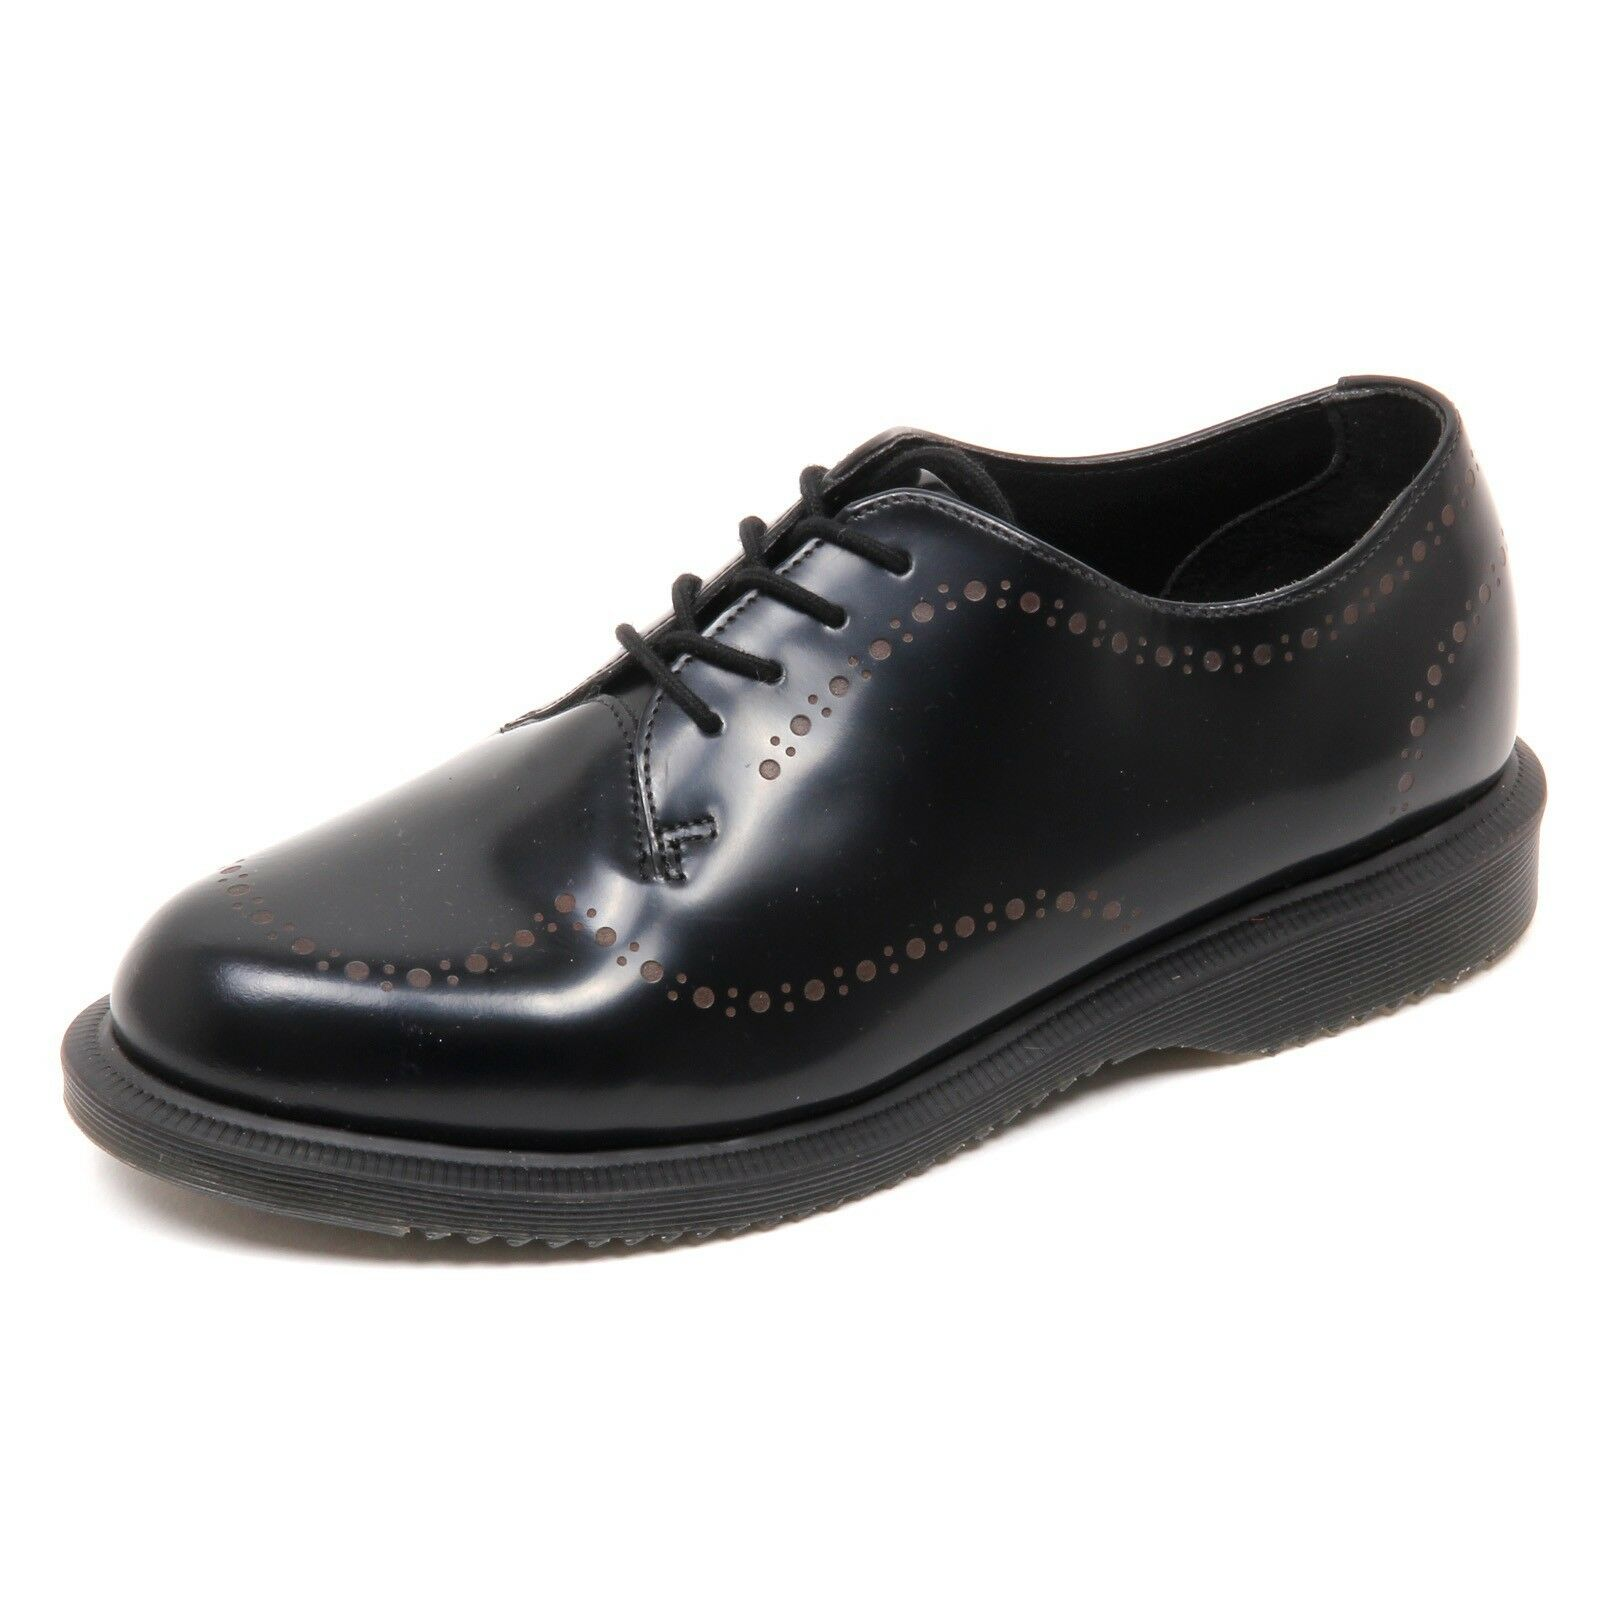 D4042 (without box) nero scarpa donna DR. MARTENS CHARLOTTE SMOOTH nero box) shoe woman 61ee34